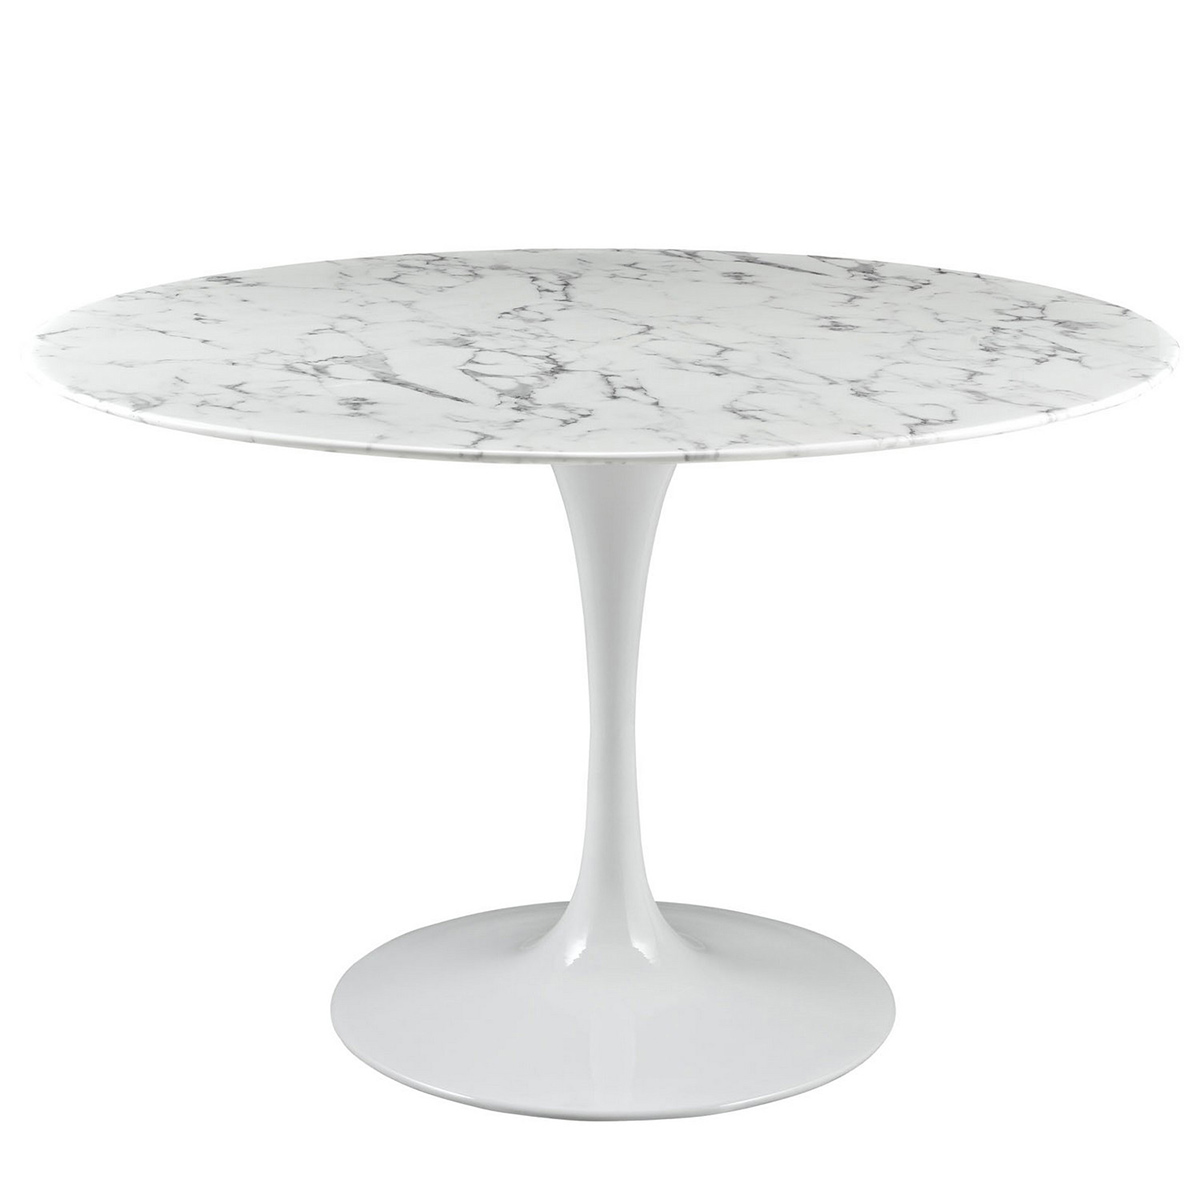 Modway Lippa 47 Artificial Marble Dining Table - White